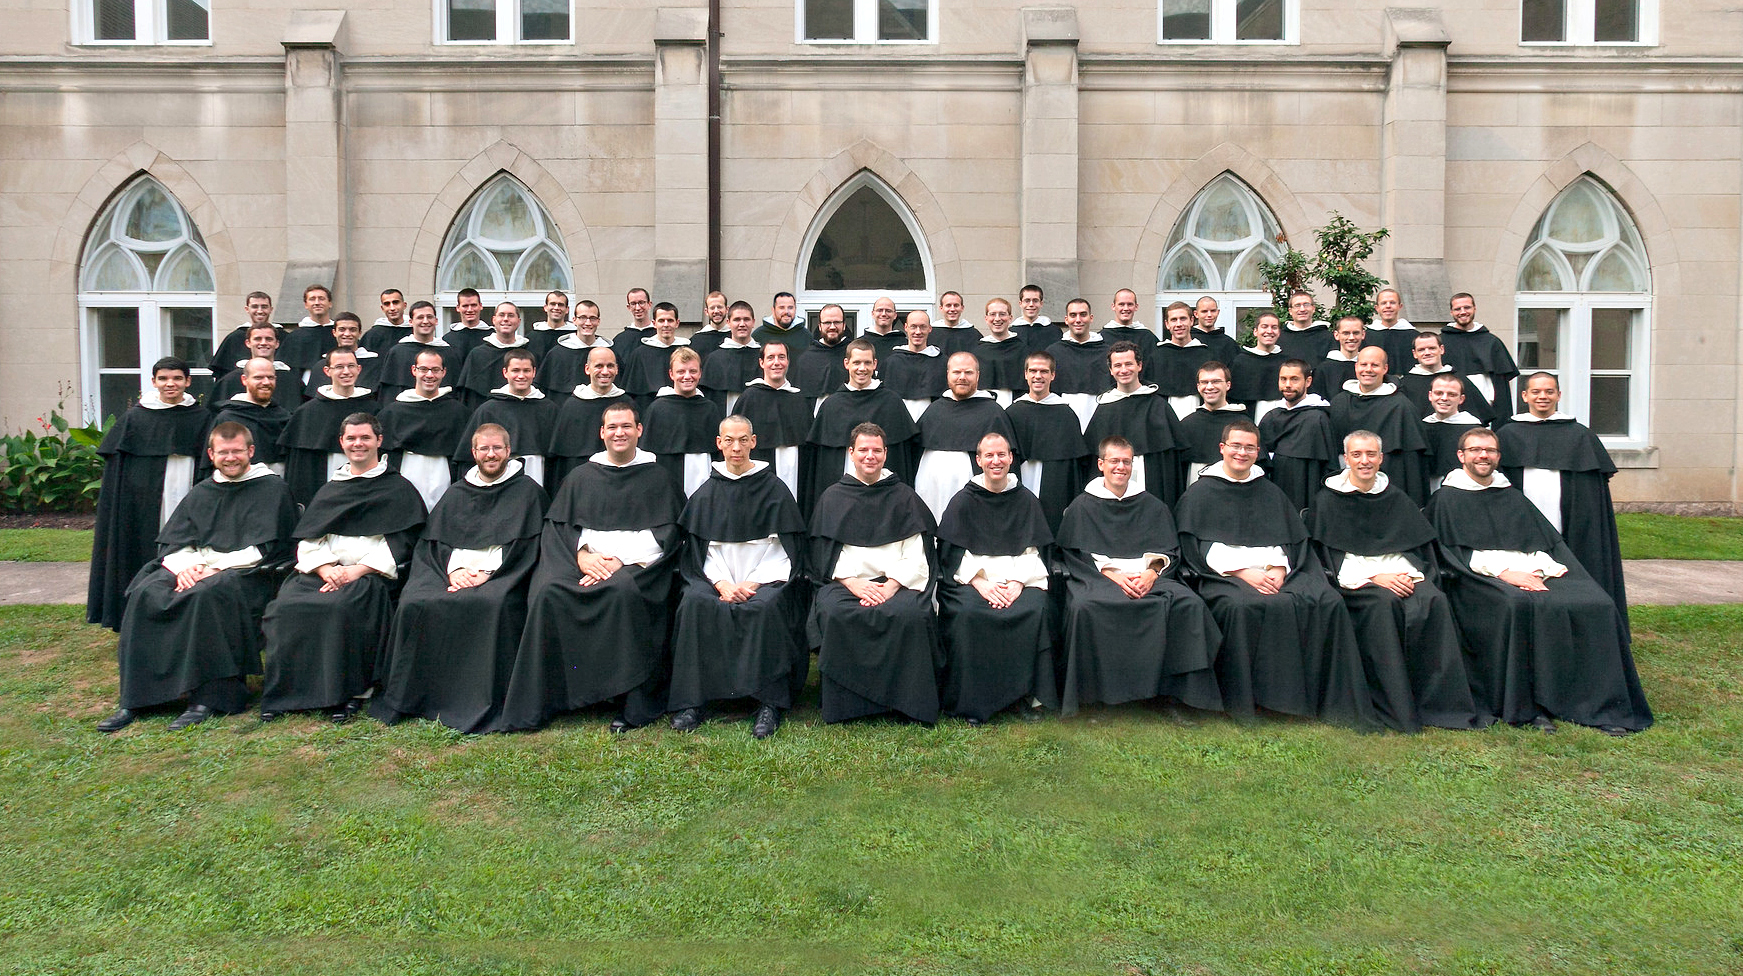 Dominican Student friars 2014-15